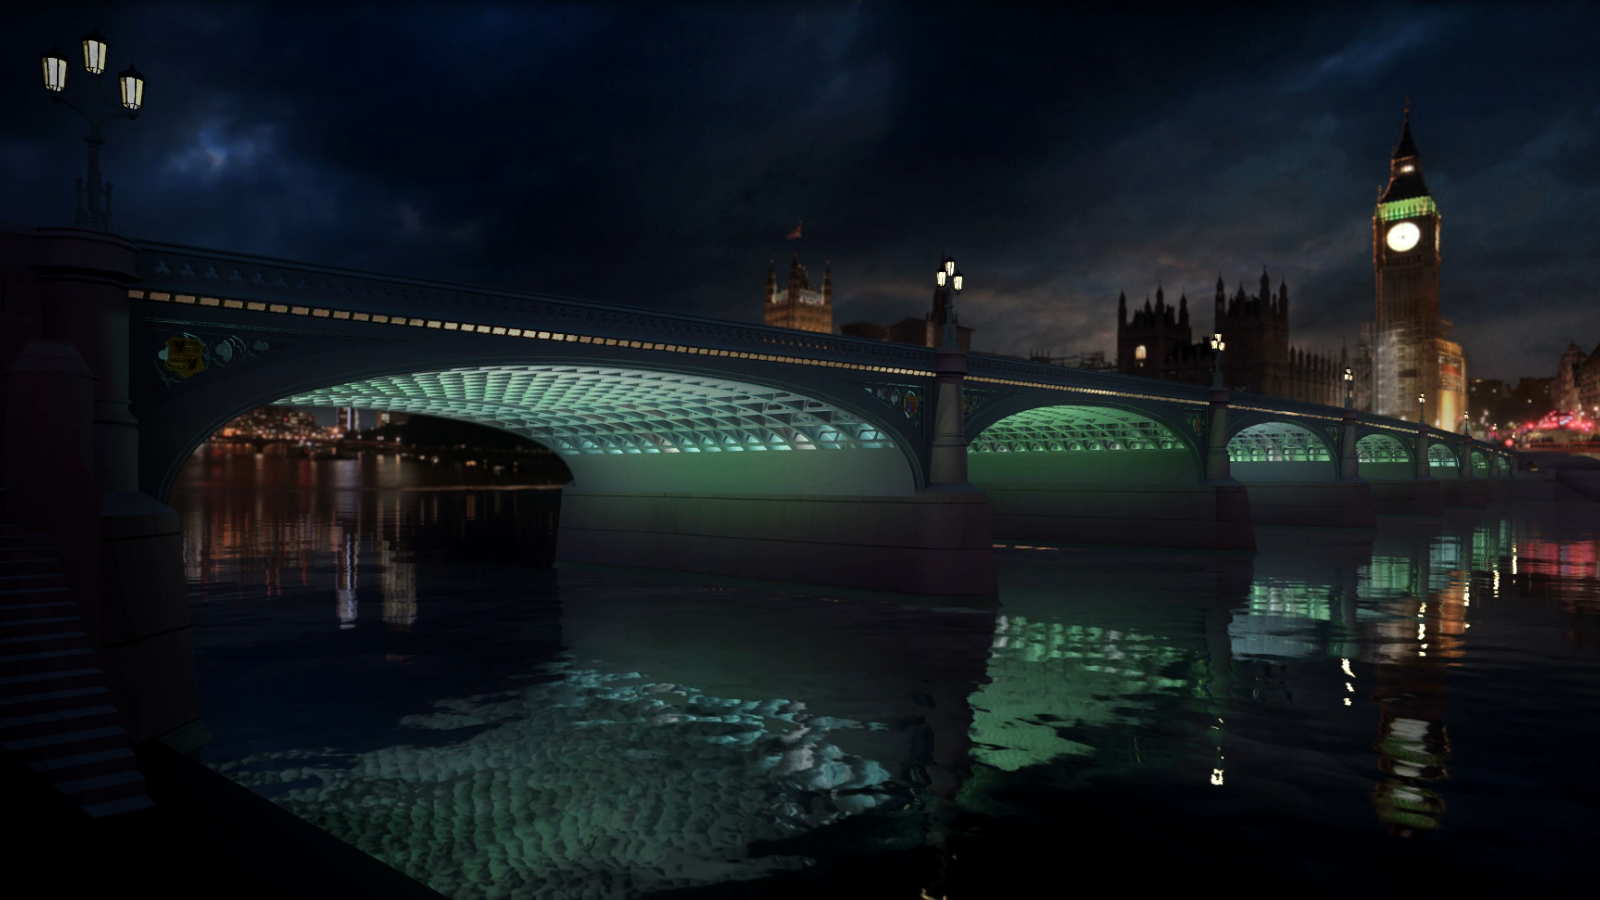 Artist behind Thames illuminations hopes they will part of London 'celebration'